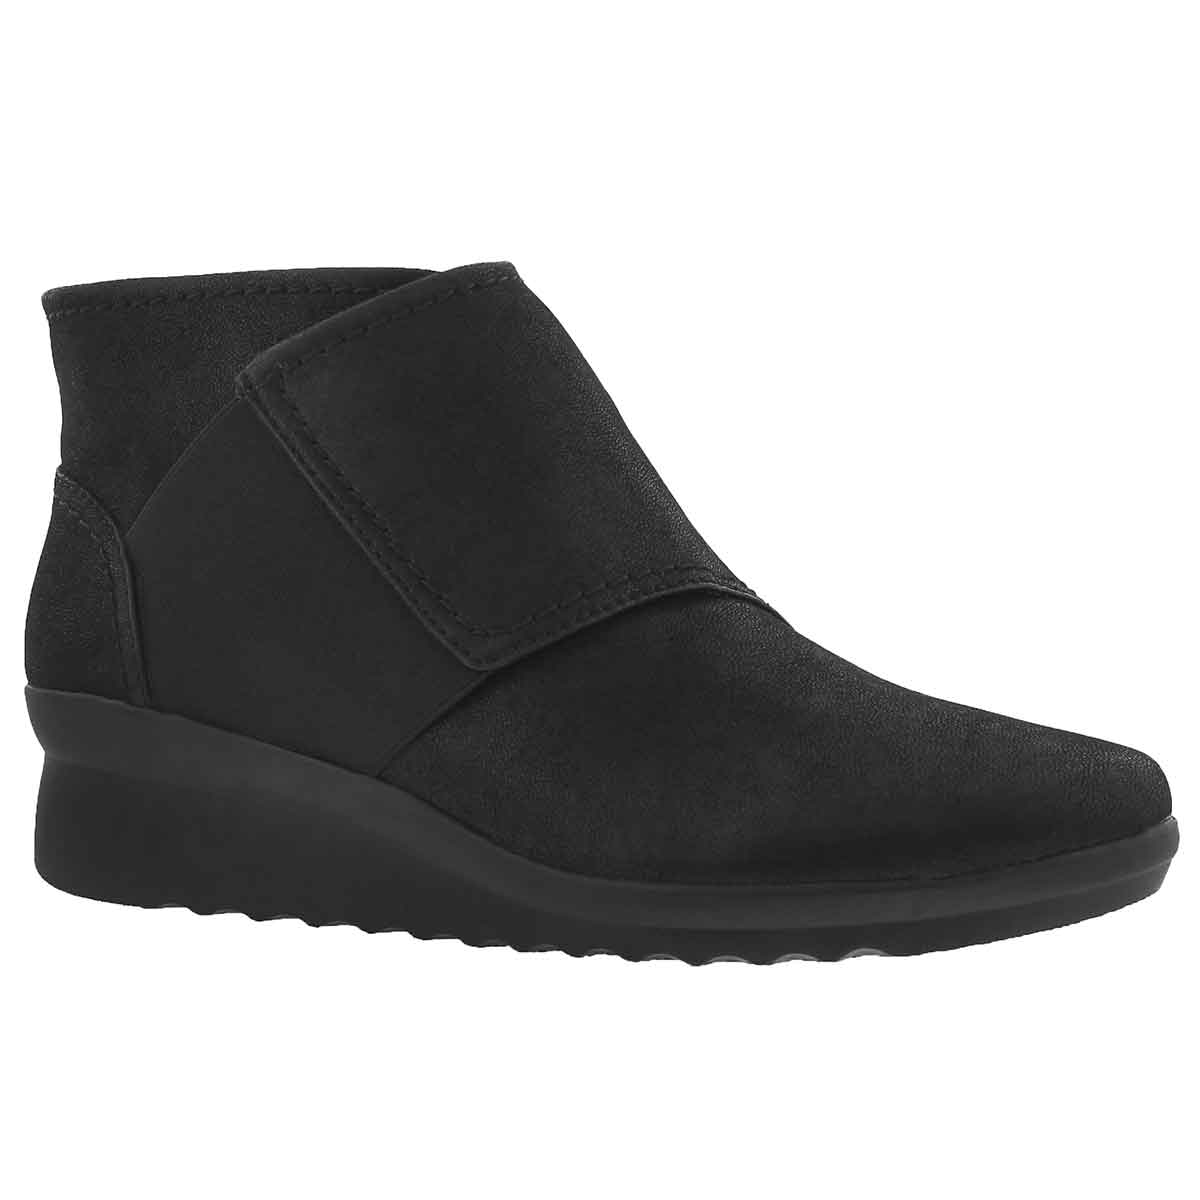 Women's CADDELL RUSH black wedge boots